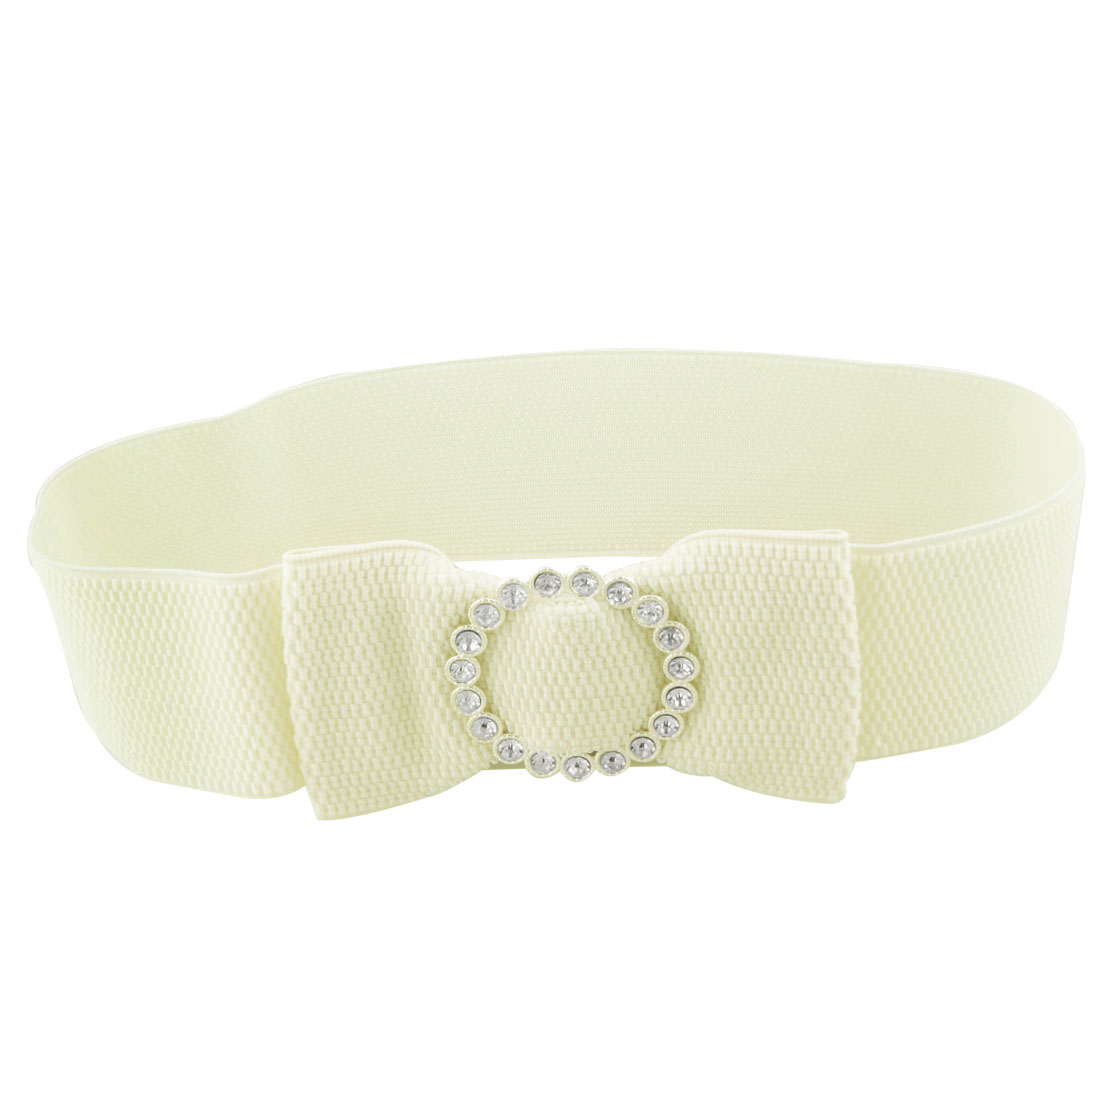 "Woman Beige Bowknot Detailing 2.4"" Wide Elastic Cinch Band Belt"